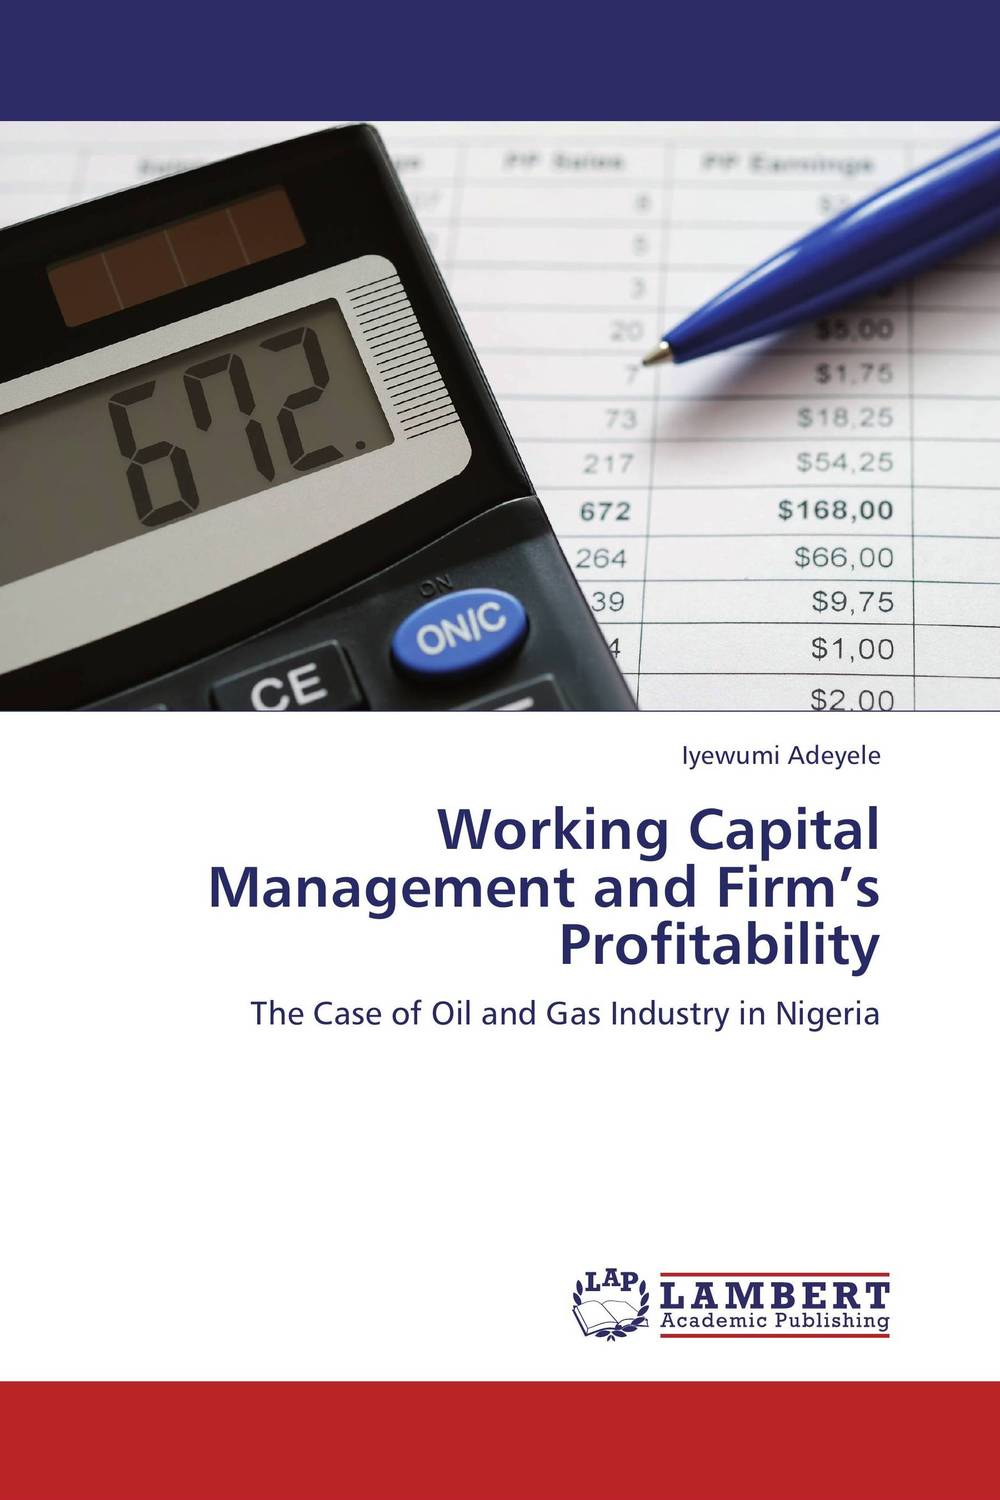 Working Capital Management and Firm's Profitability not working